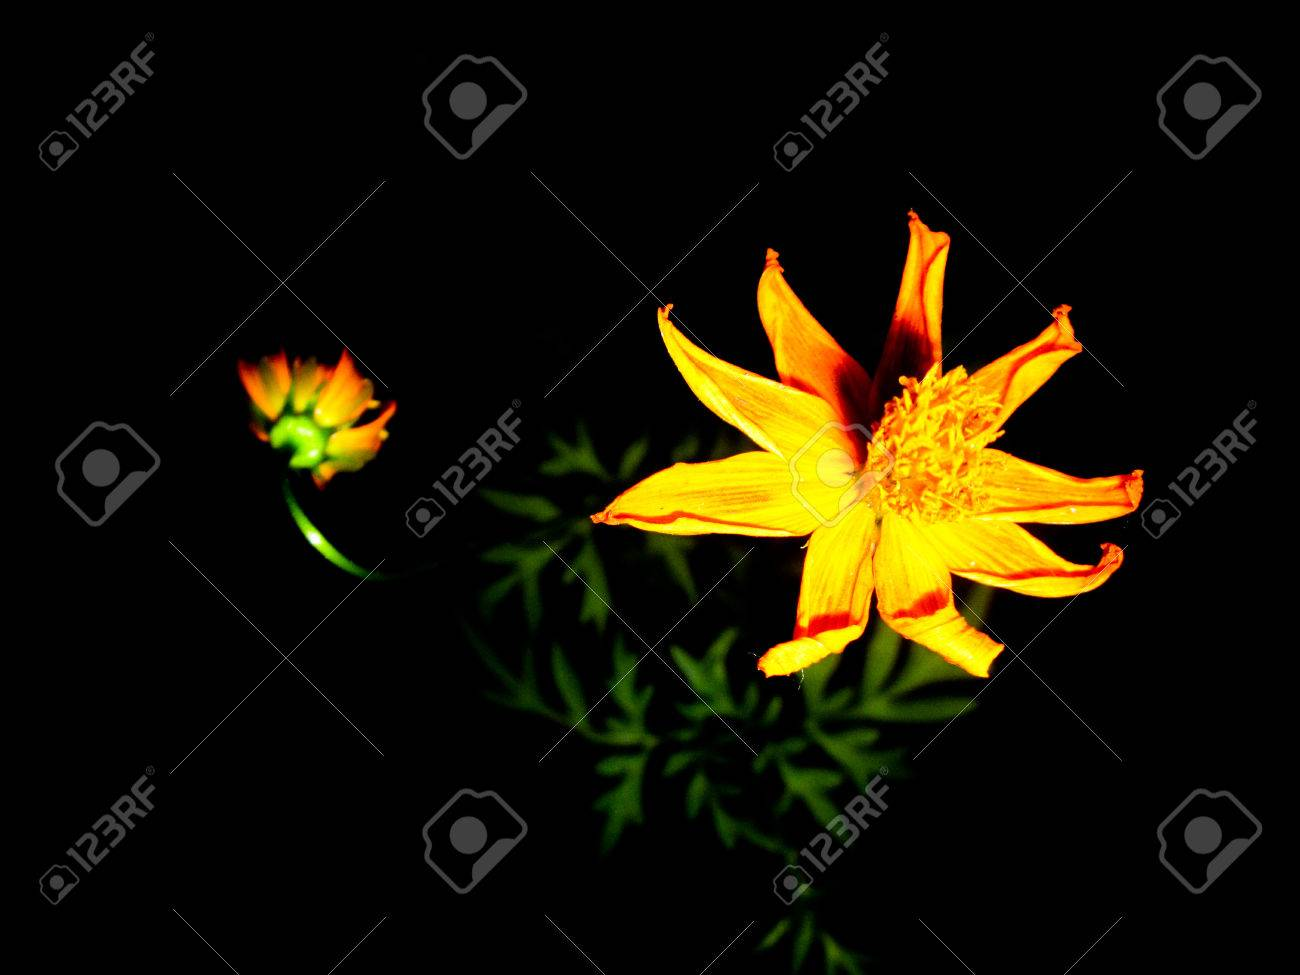 Best Wallpaper Night Flower - 84962243-yellow-flower-on-night-black-background-dark-flower-wallpaper  You Should Have-296182.jpg